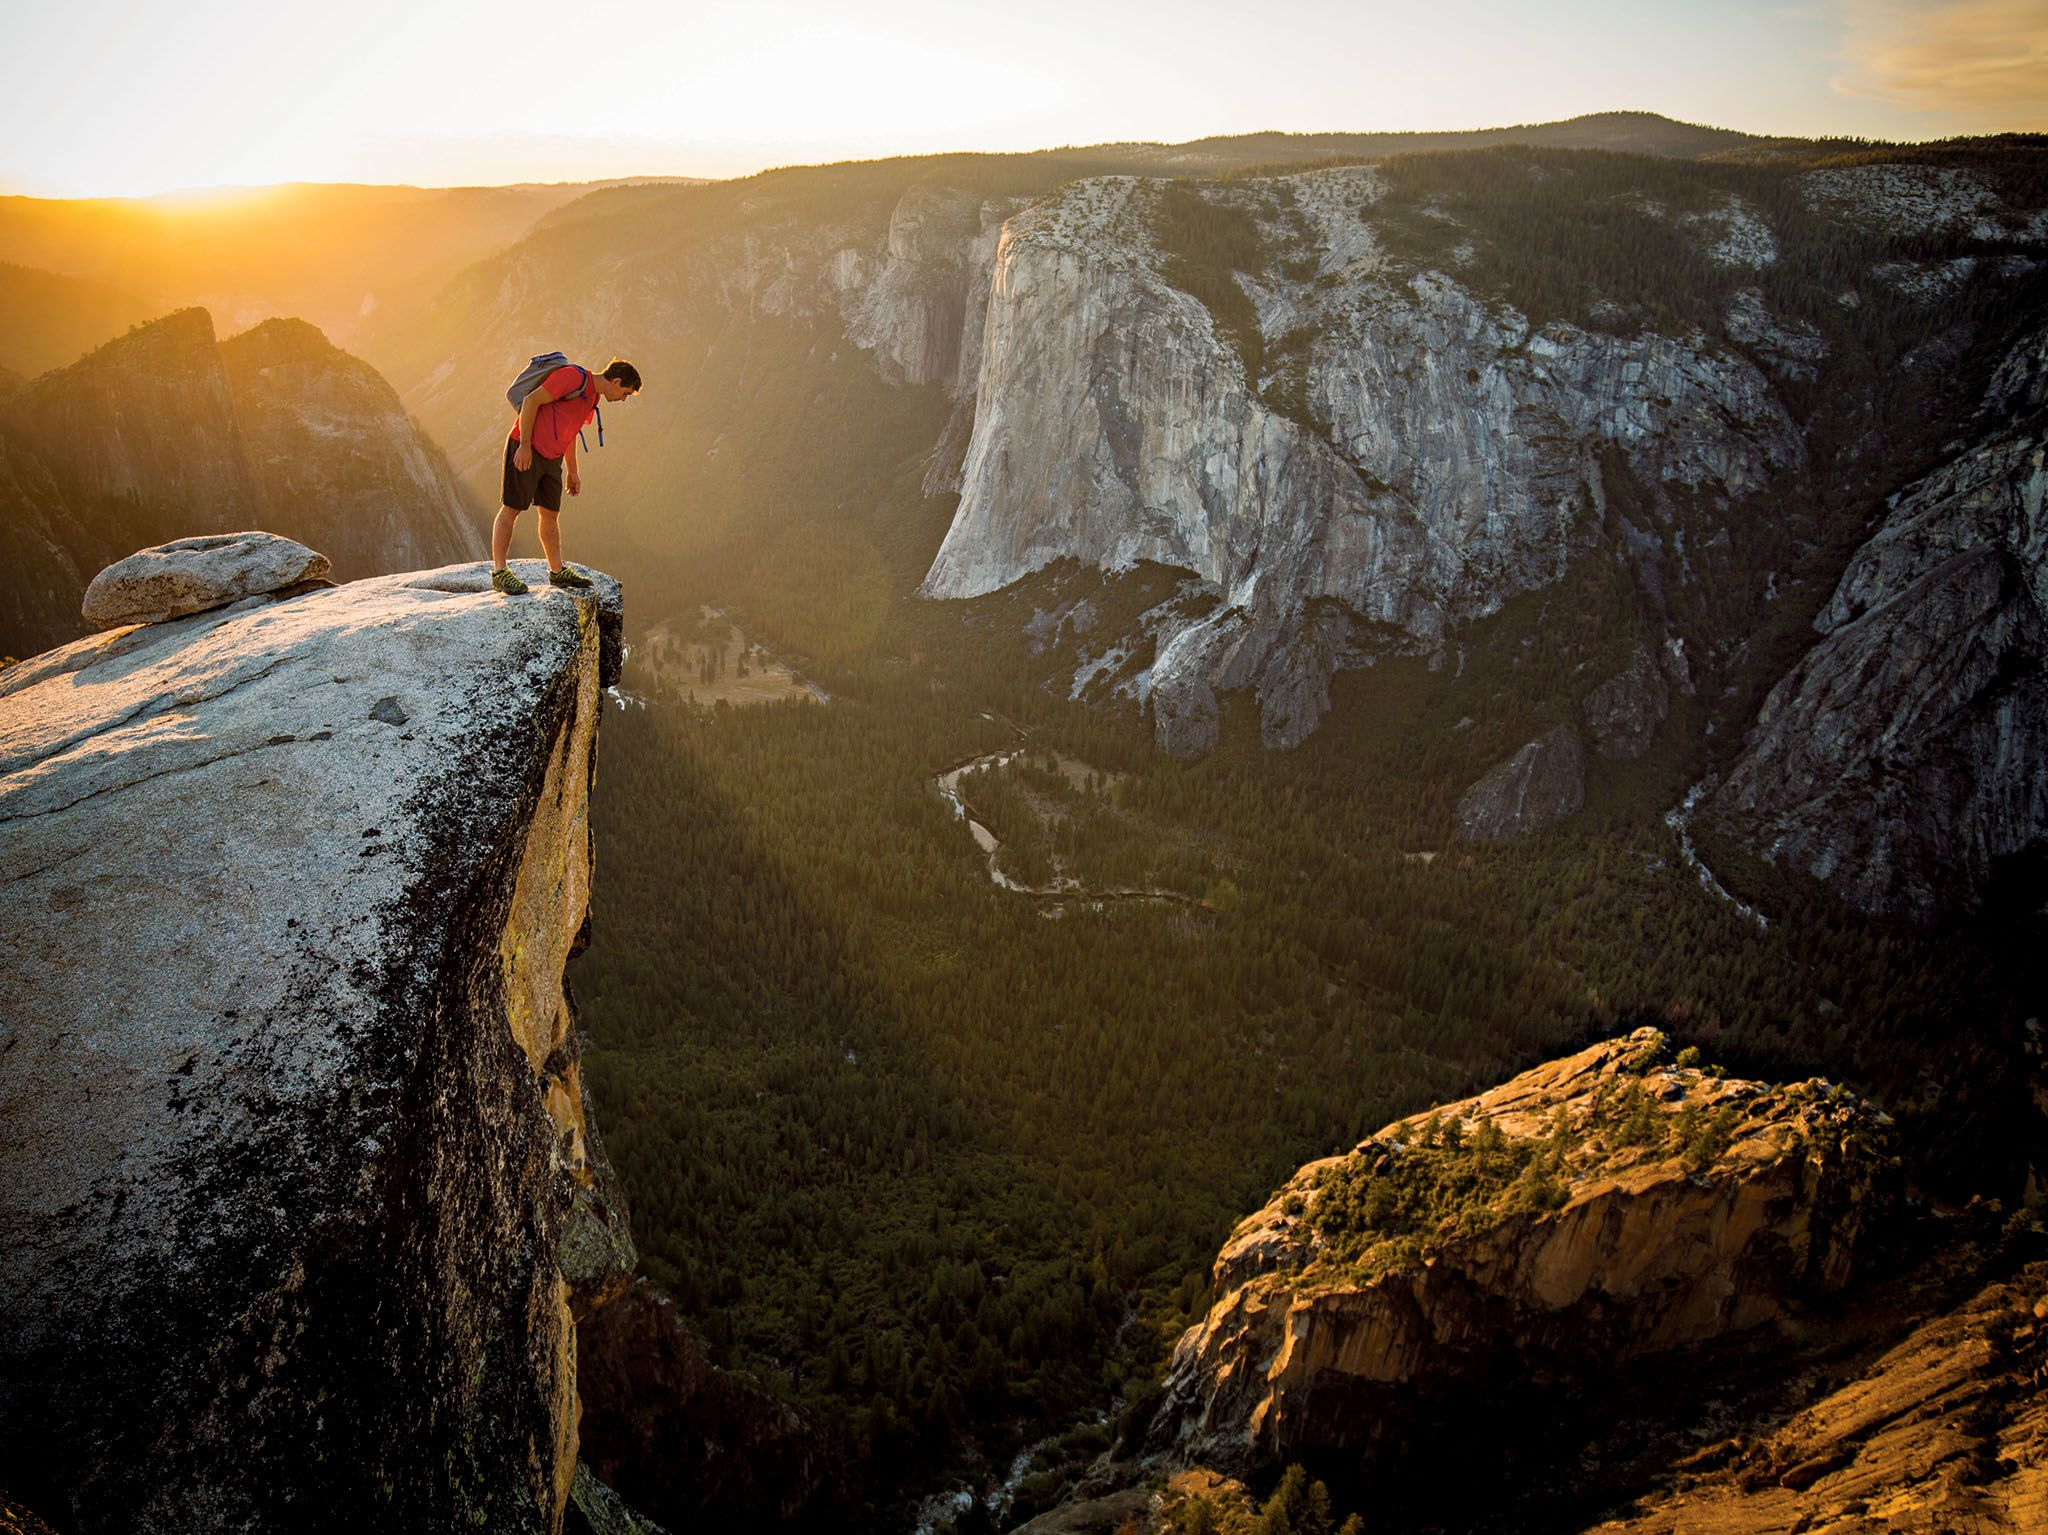 Honnold peers over the edge of Taft Point, across the Yosemite Valley from the granite... [Photo of the day - March 2019]